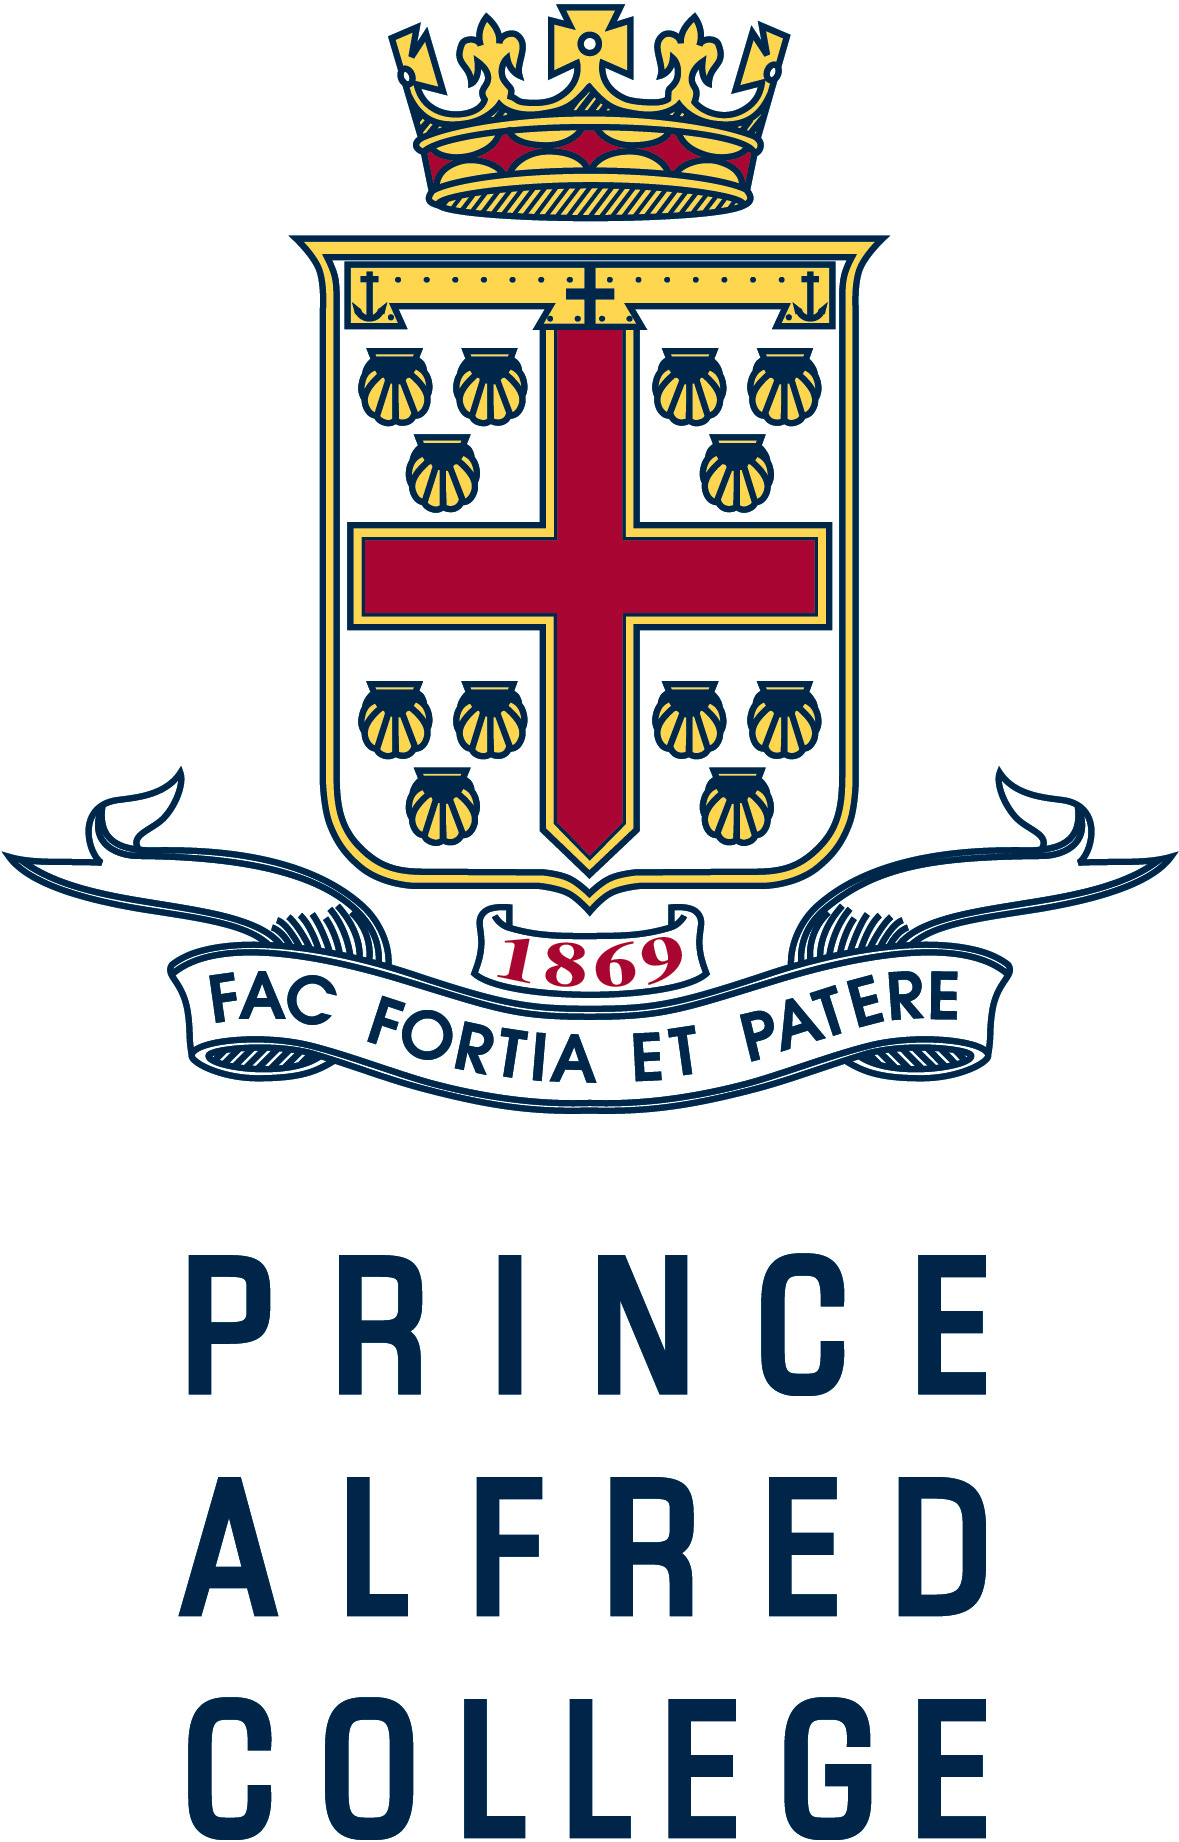 PRINCE ALFRED COLLEGE - LOGO 2